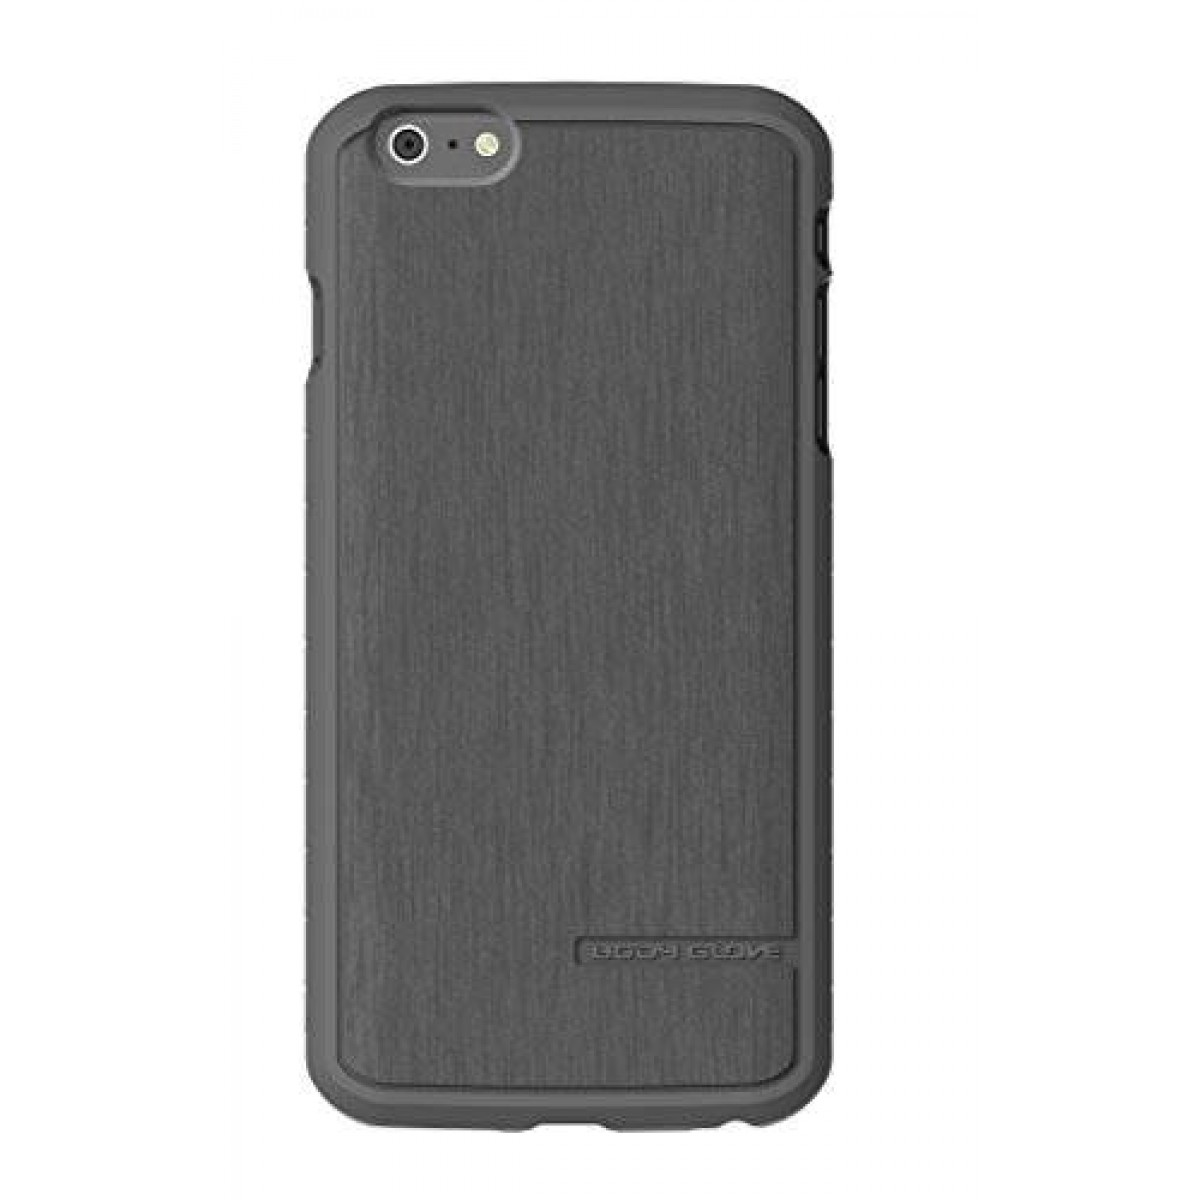 quality design 4c80c 49d4c Body Glove Satin Phone Case for Apple iPhone 6 Plus/6s Plus, Charcoal